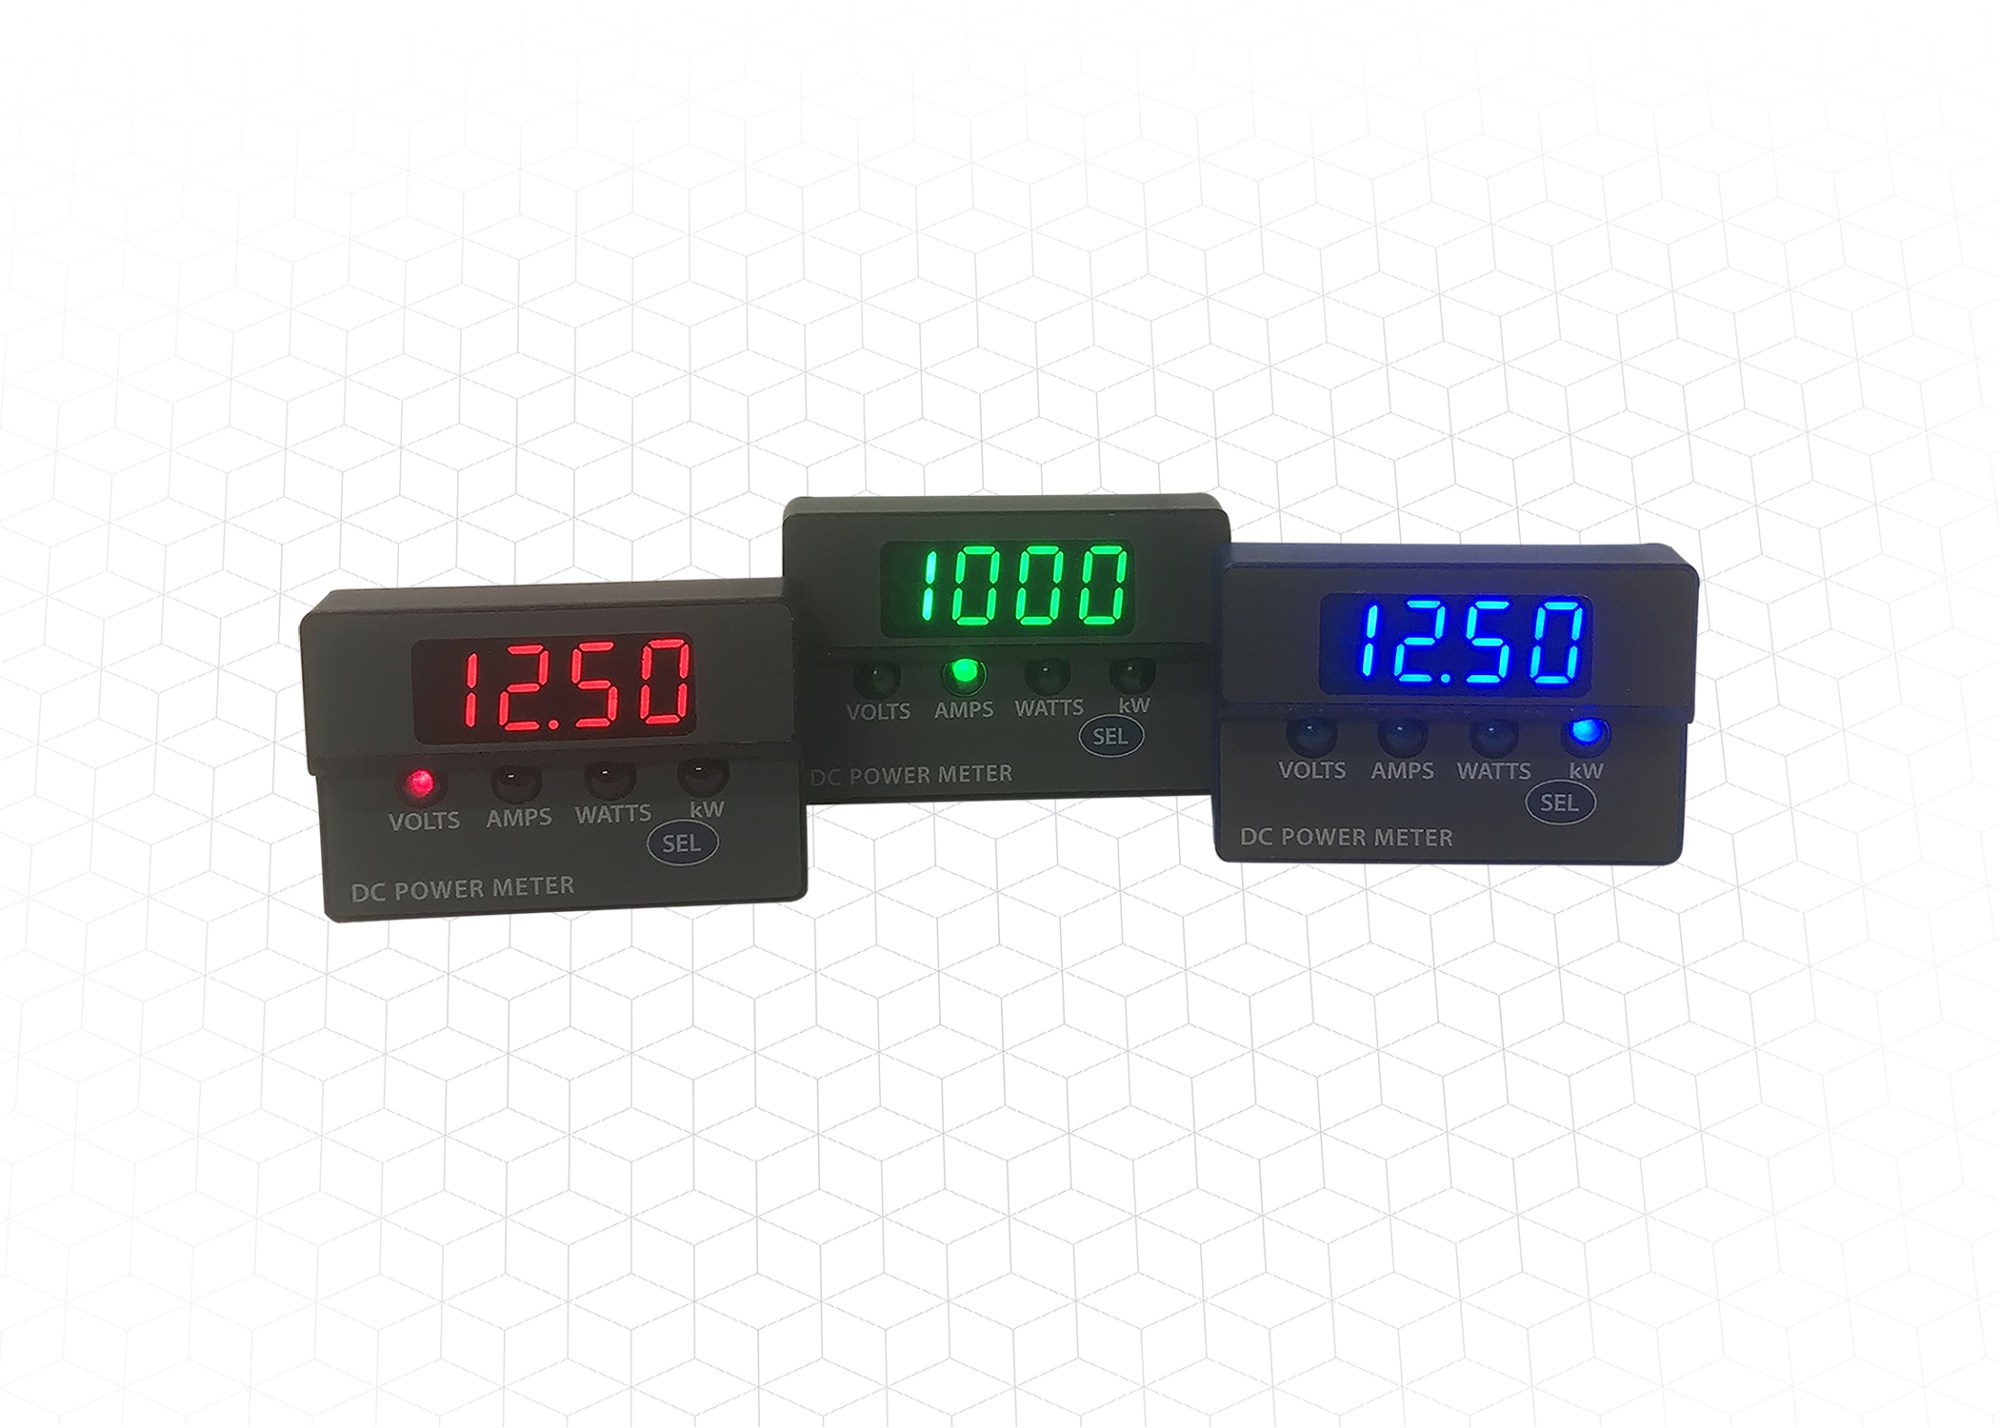 hight resolution of dc panel meters display voltage current and power